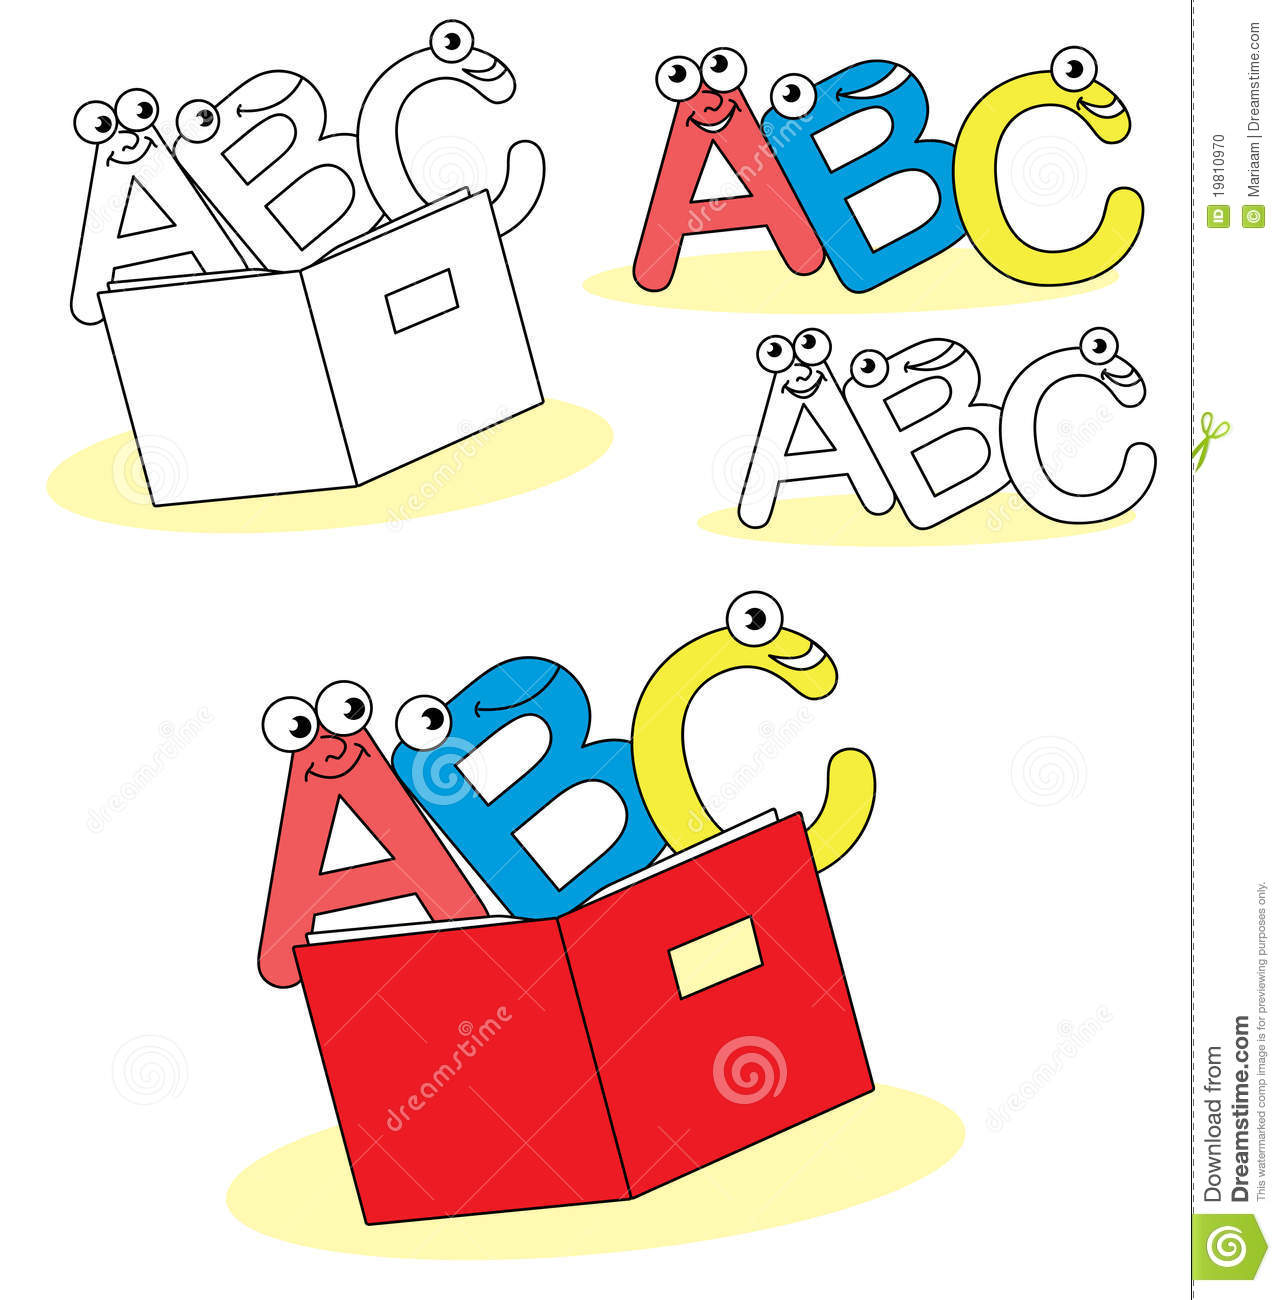 7 Letter Cartoon Characters : Funny abc cartoon letters stock illustration image of